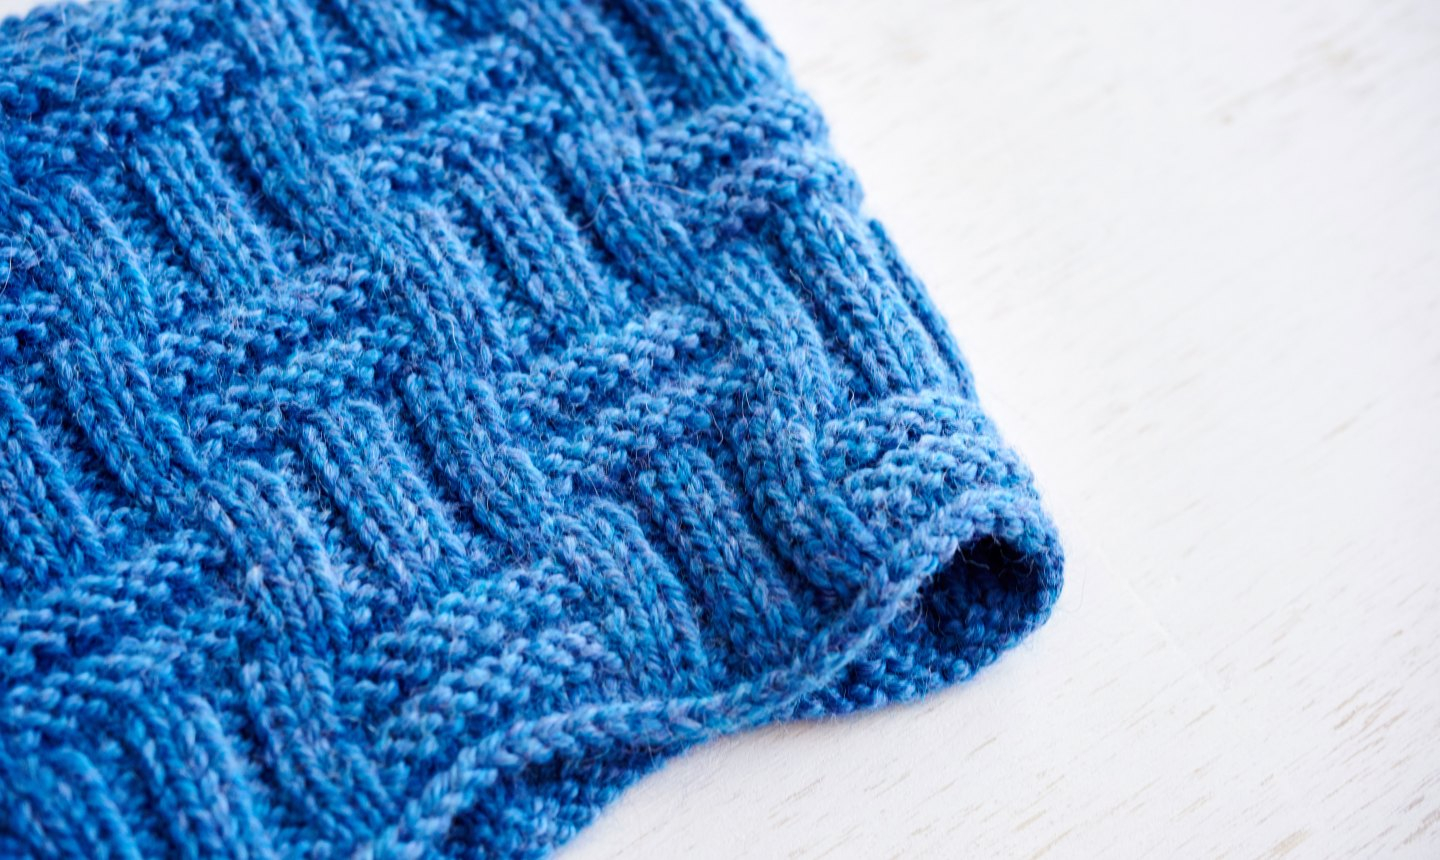 Knitted Pattern Easy Knitted Scarves Cowl Projects